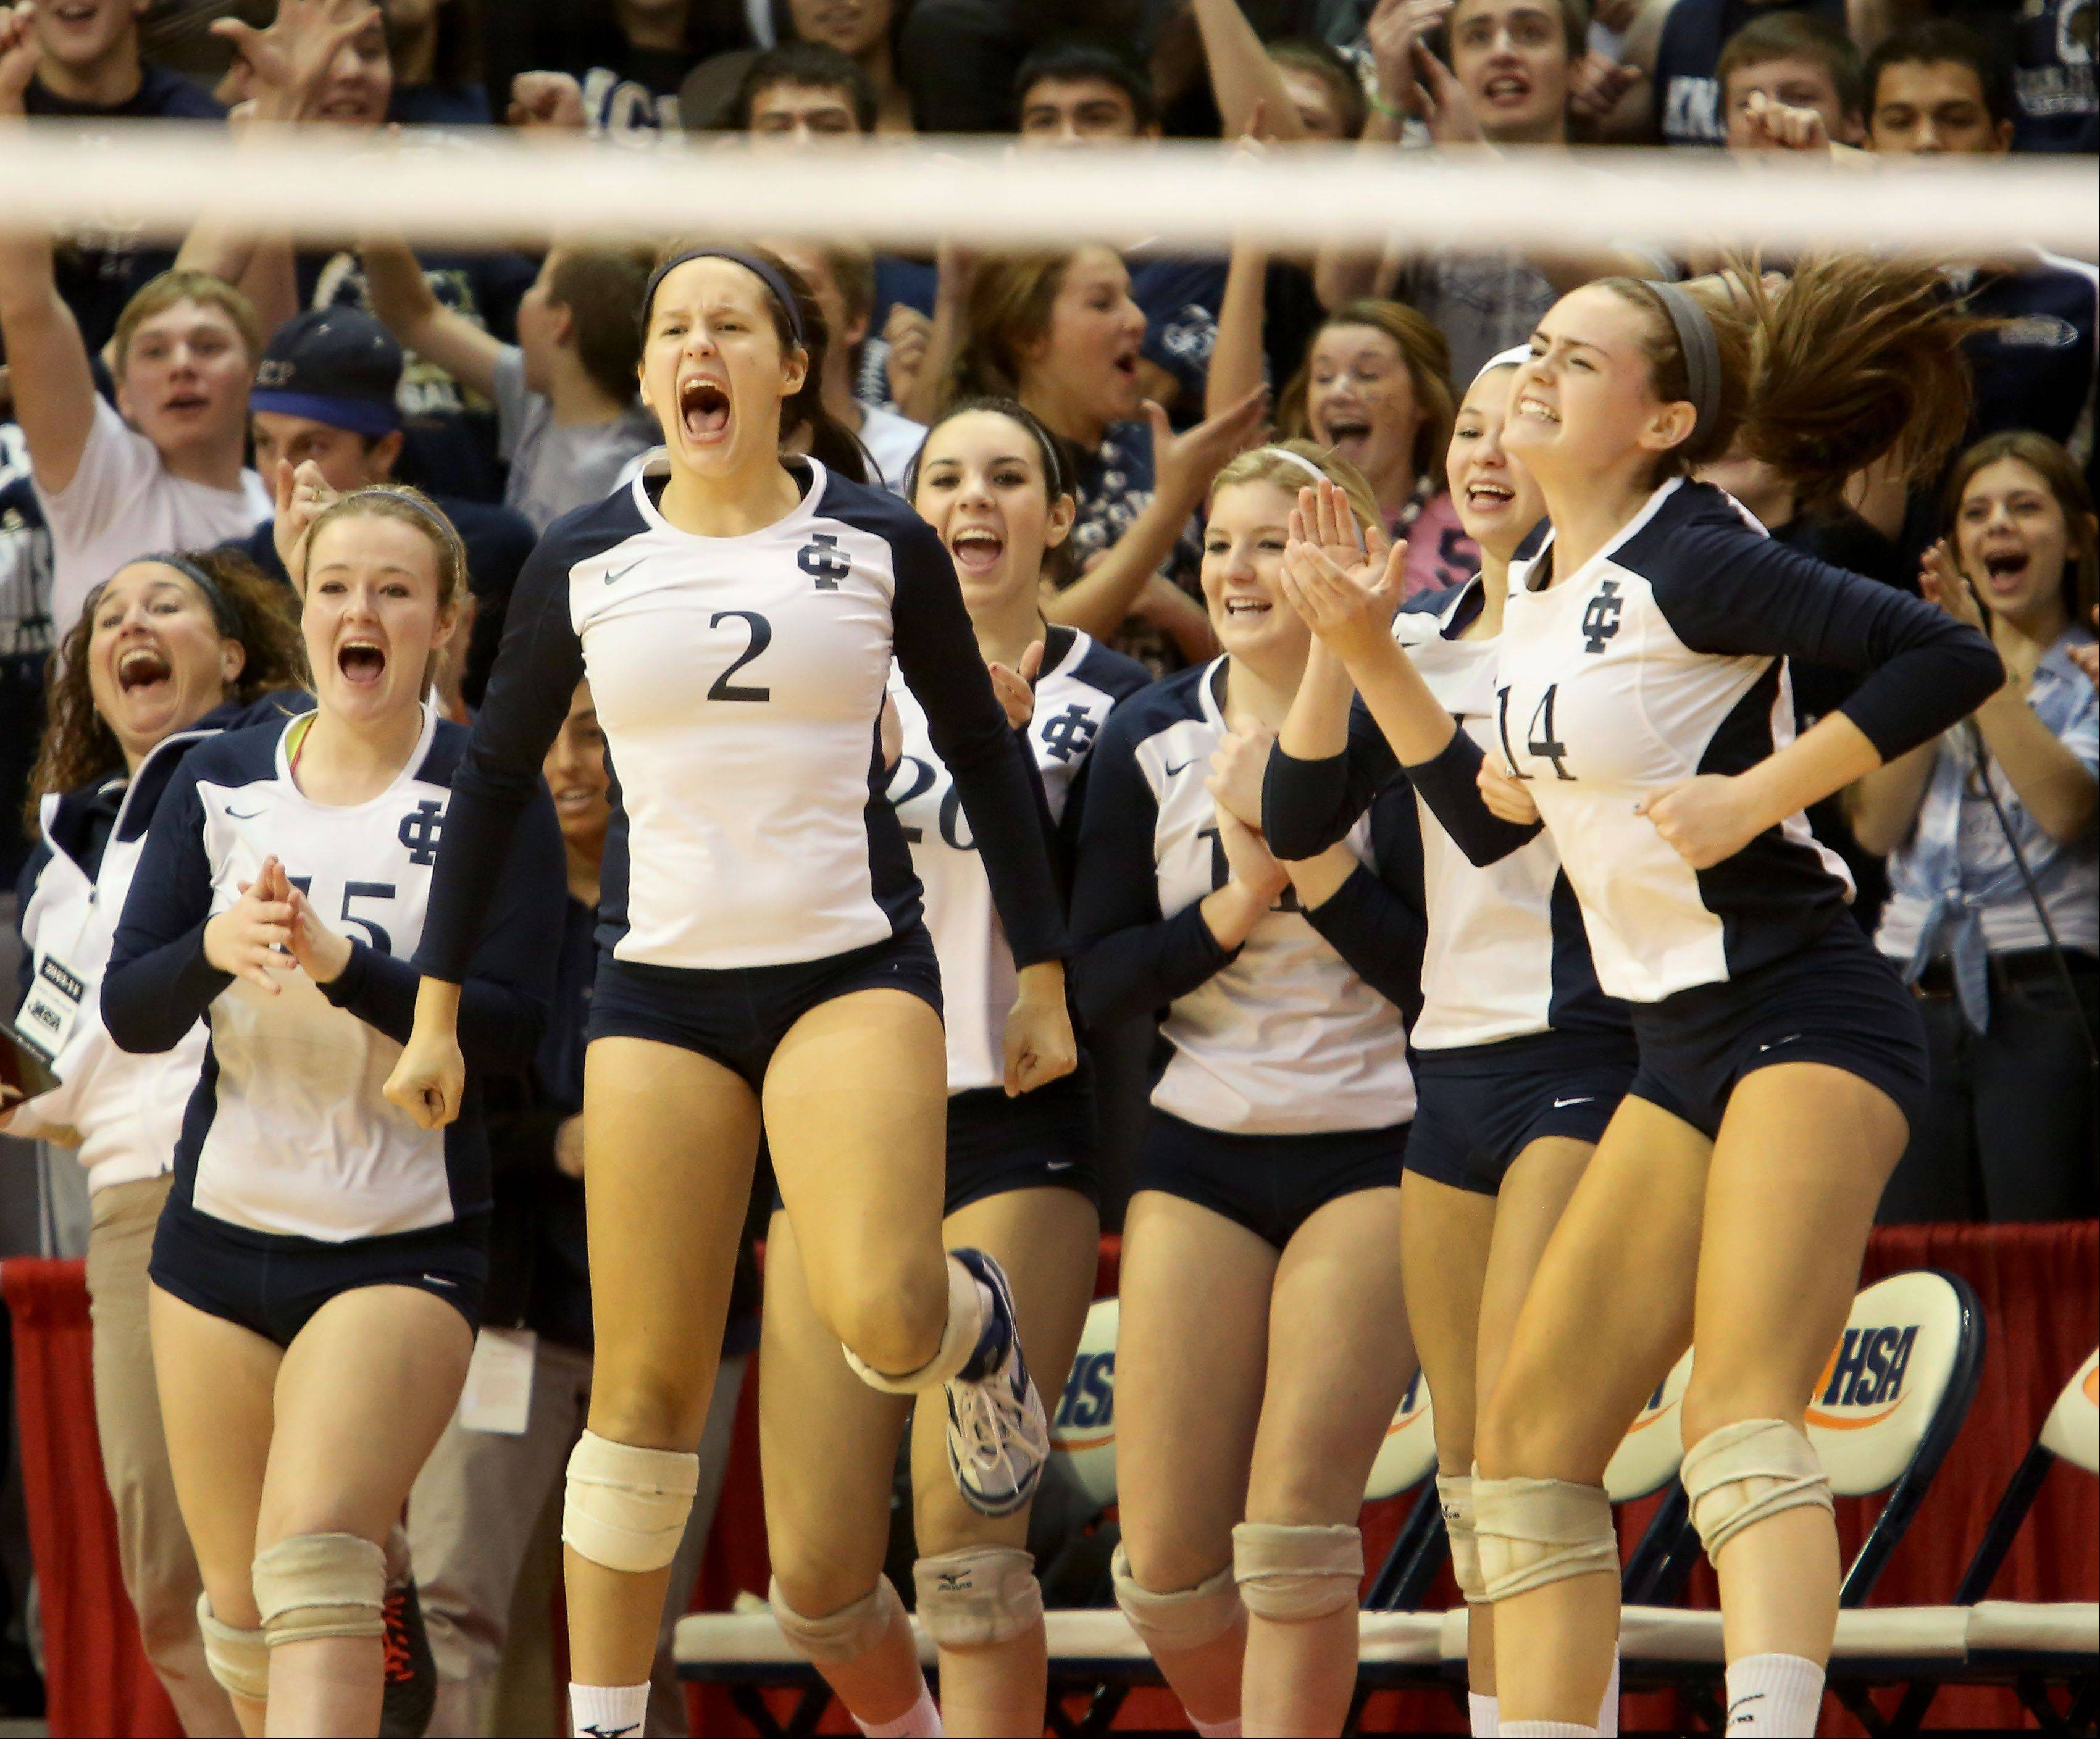 The IC Catholic Prep bench reacts to the first-set win over Deer Creek-Mackinaw in Class 2A state girls volleyball semifinal action on Friday in Normal.